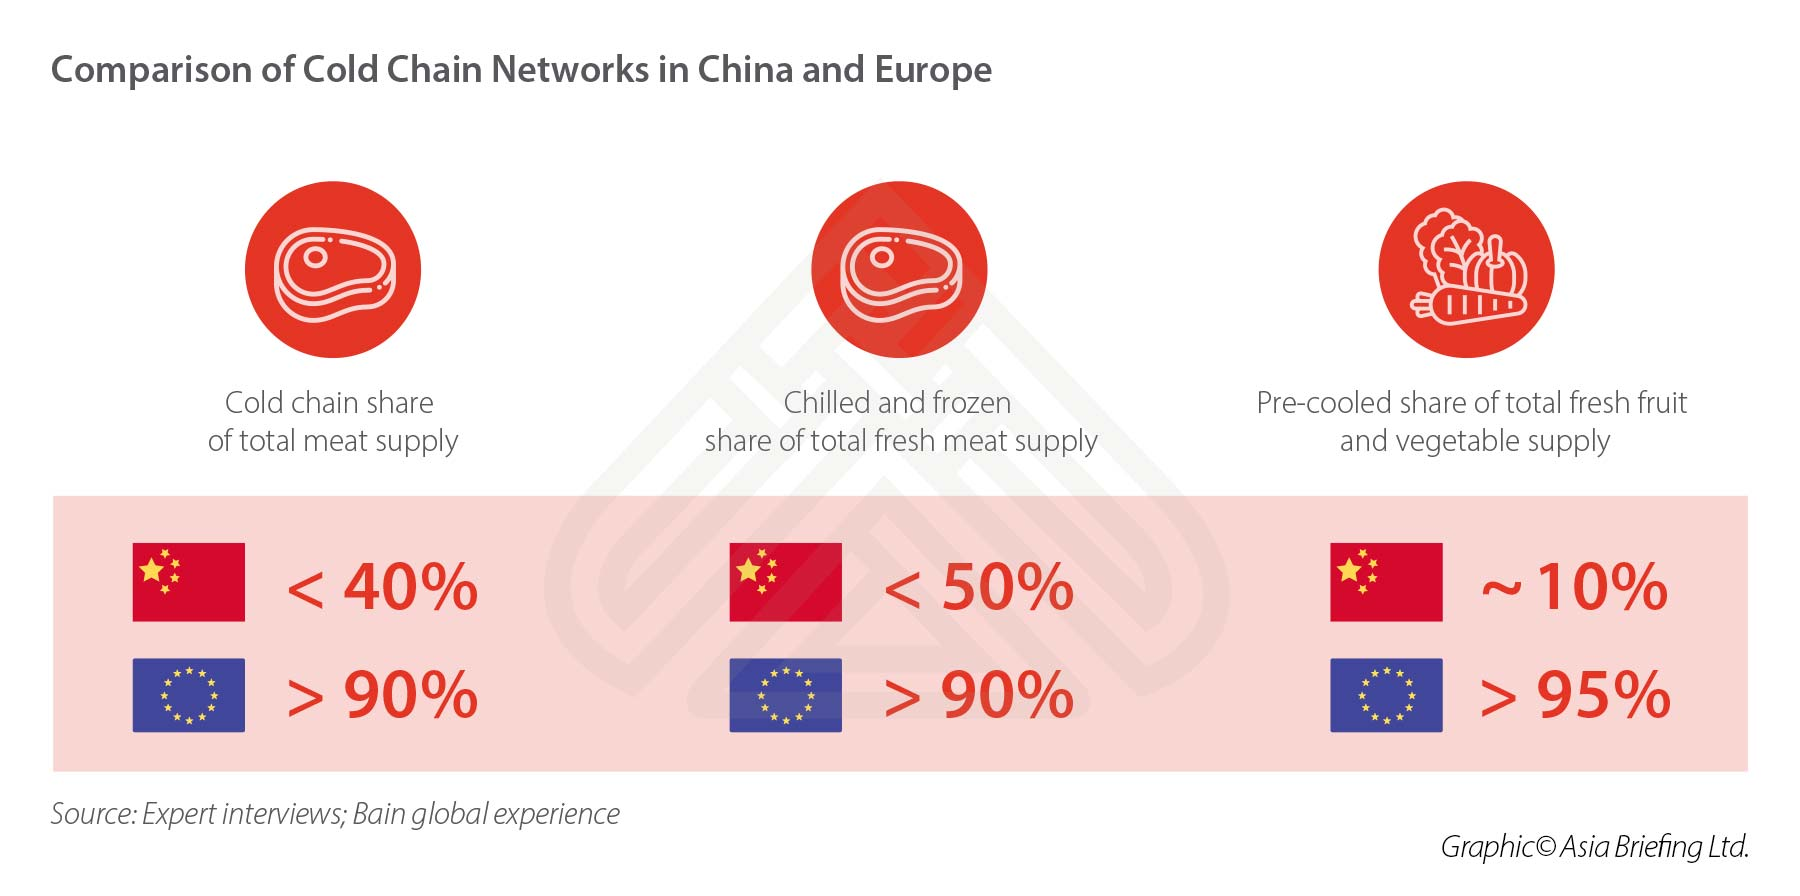 cold-chain-china-europe-network-comparison